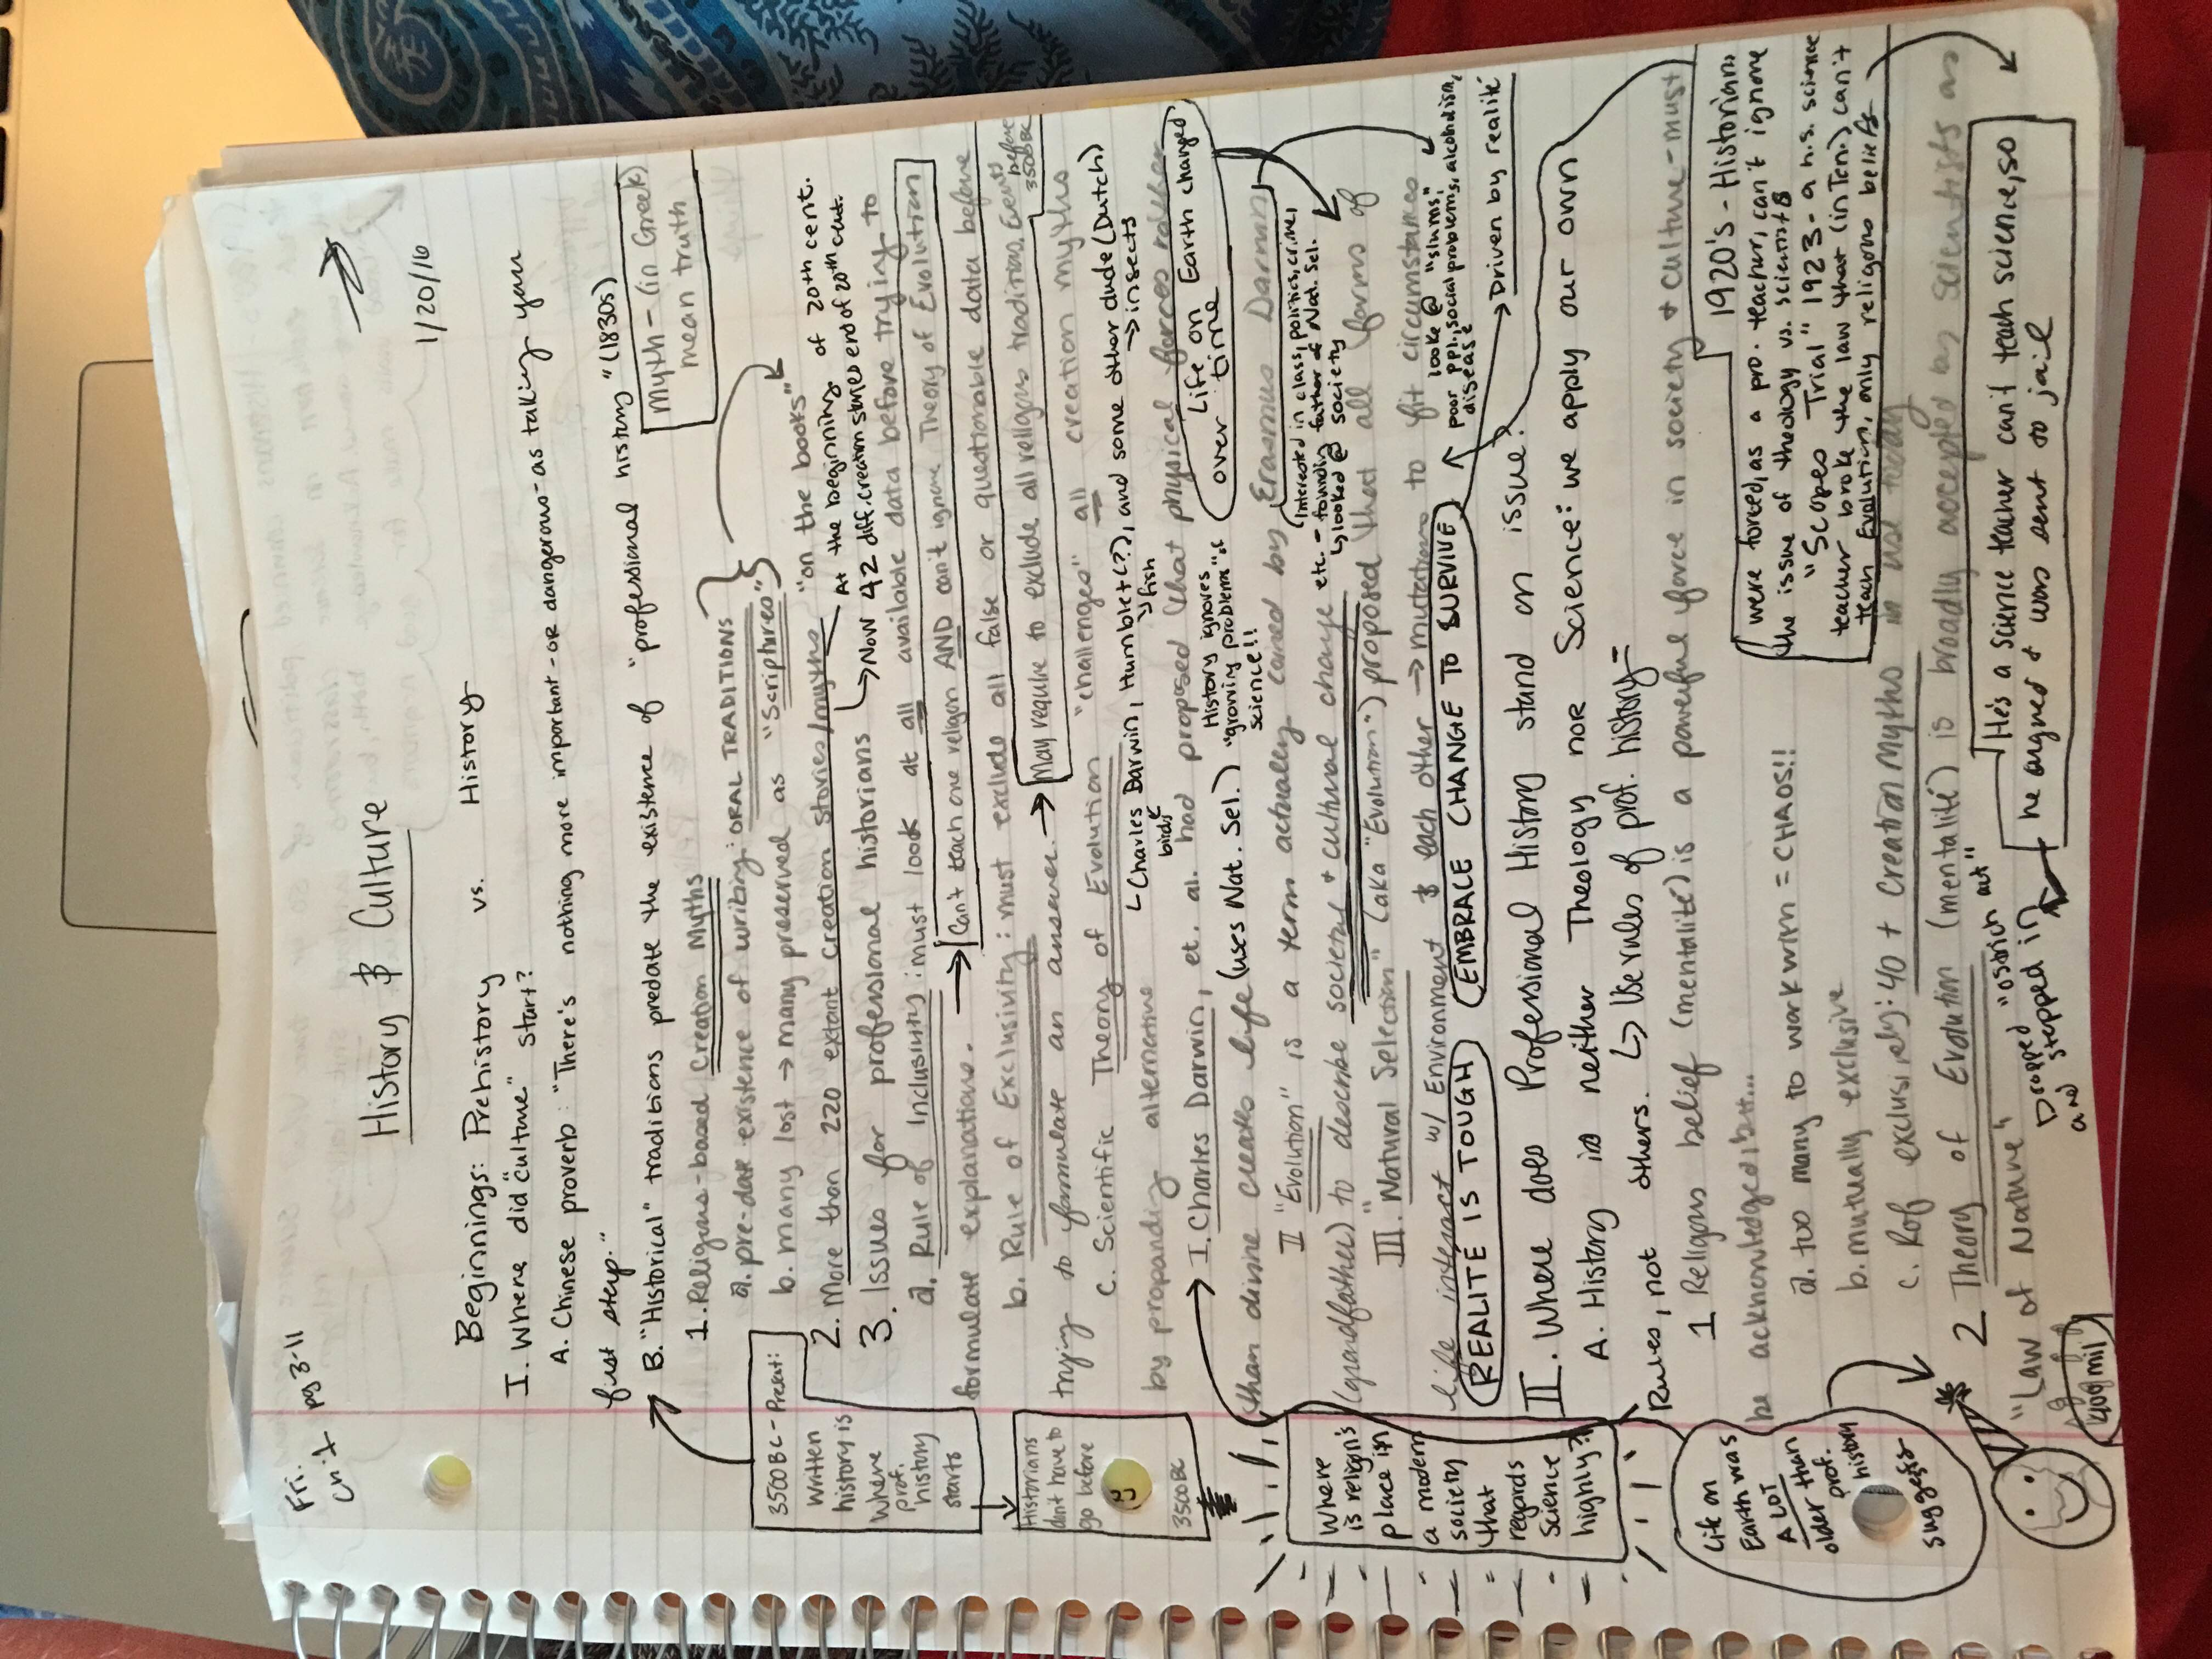 HIS 1110 - Class Notes - Week 2